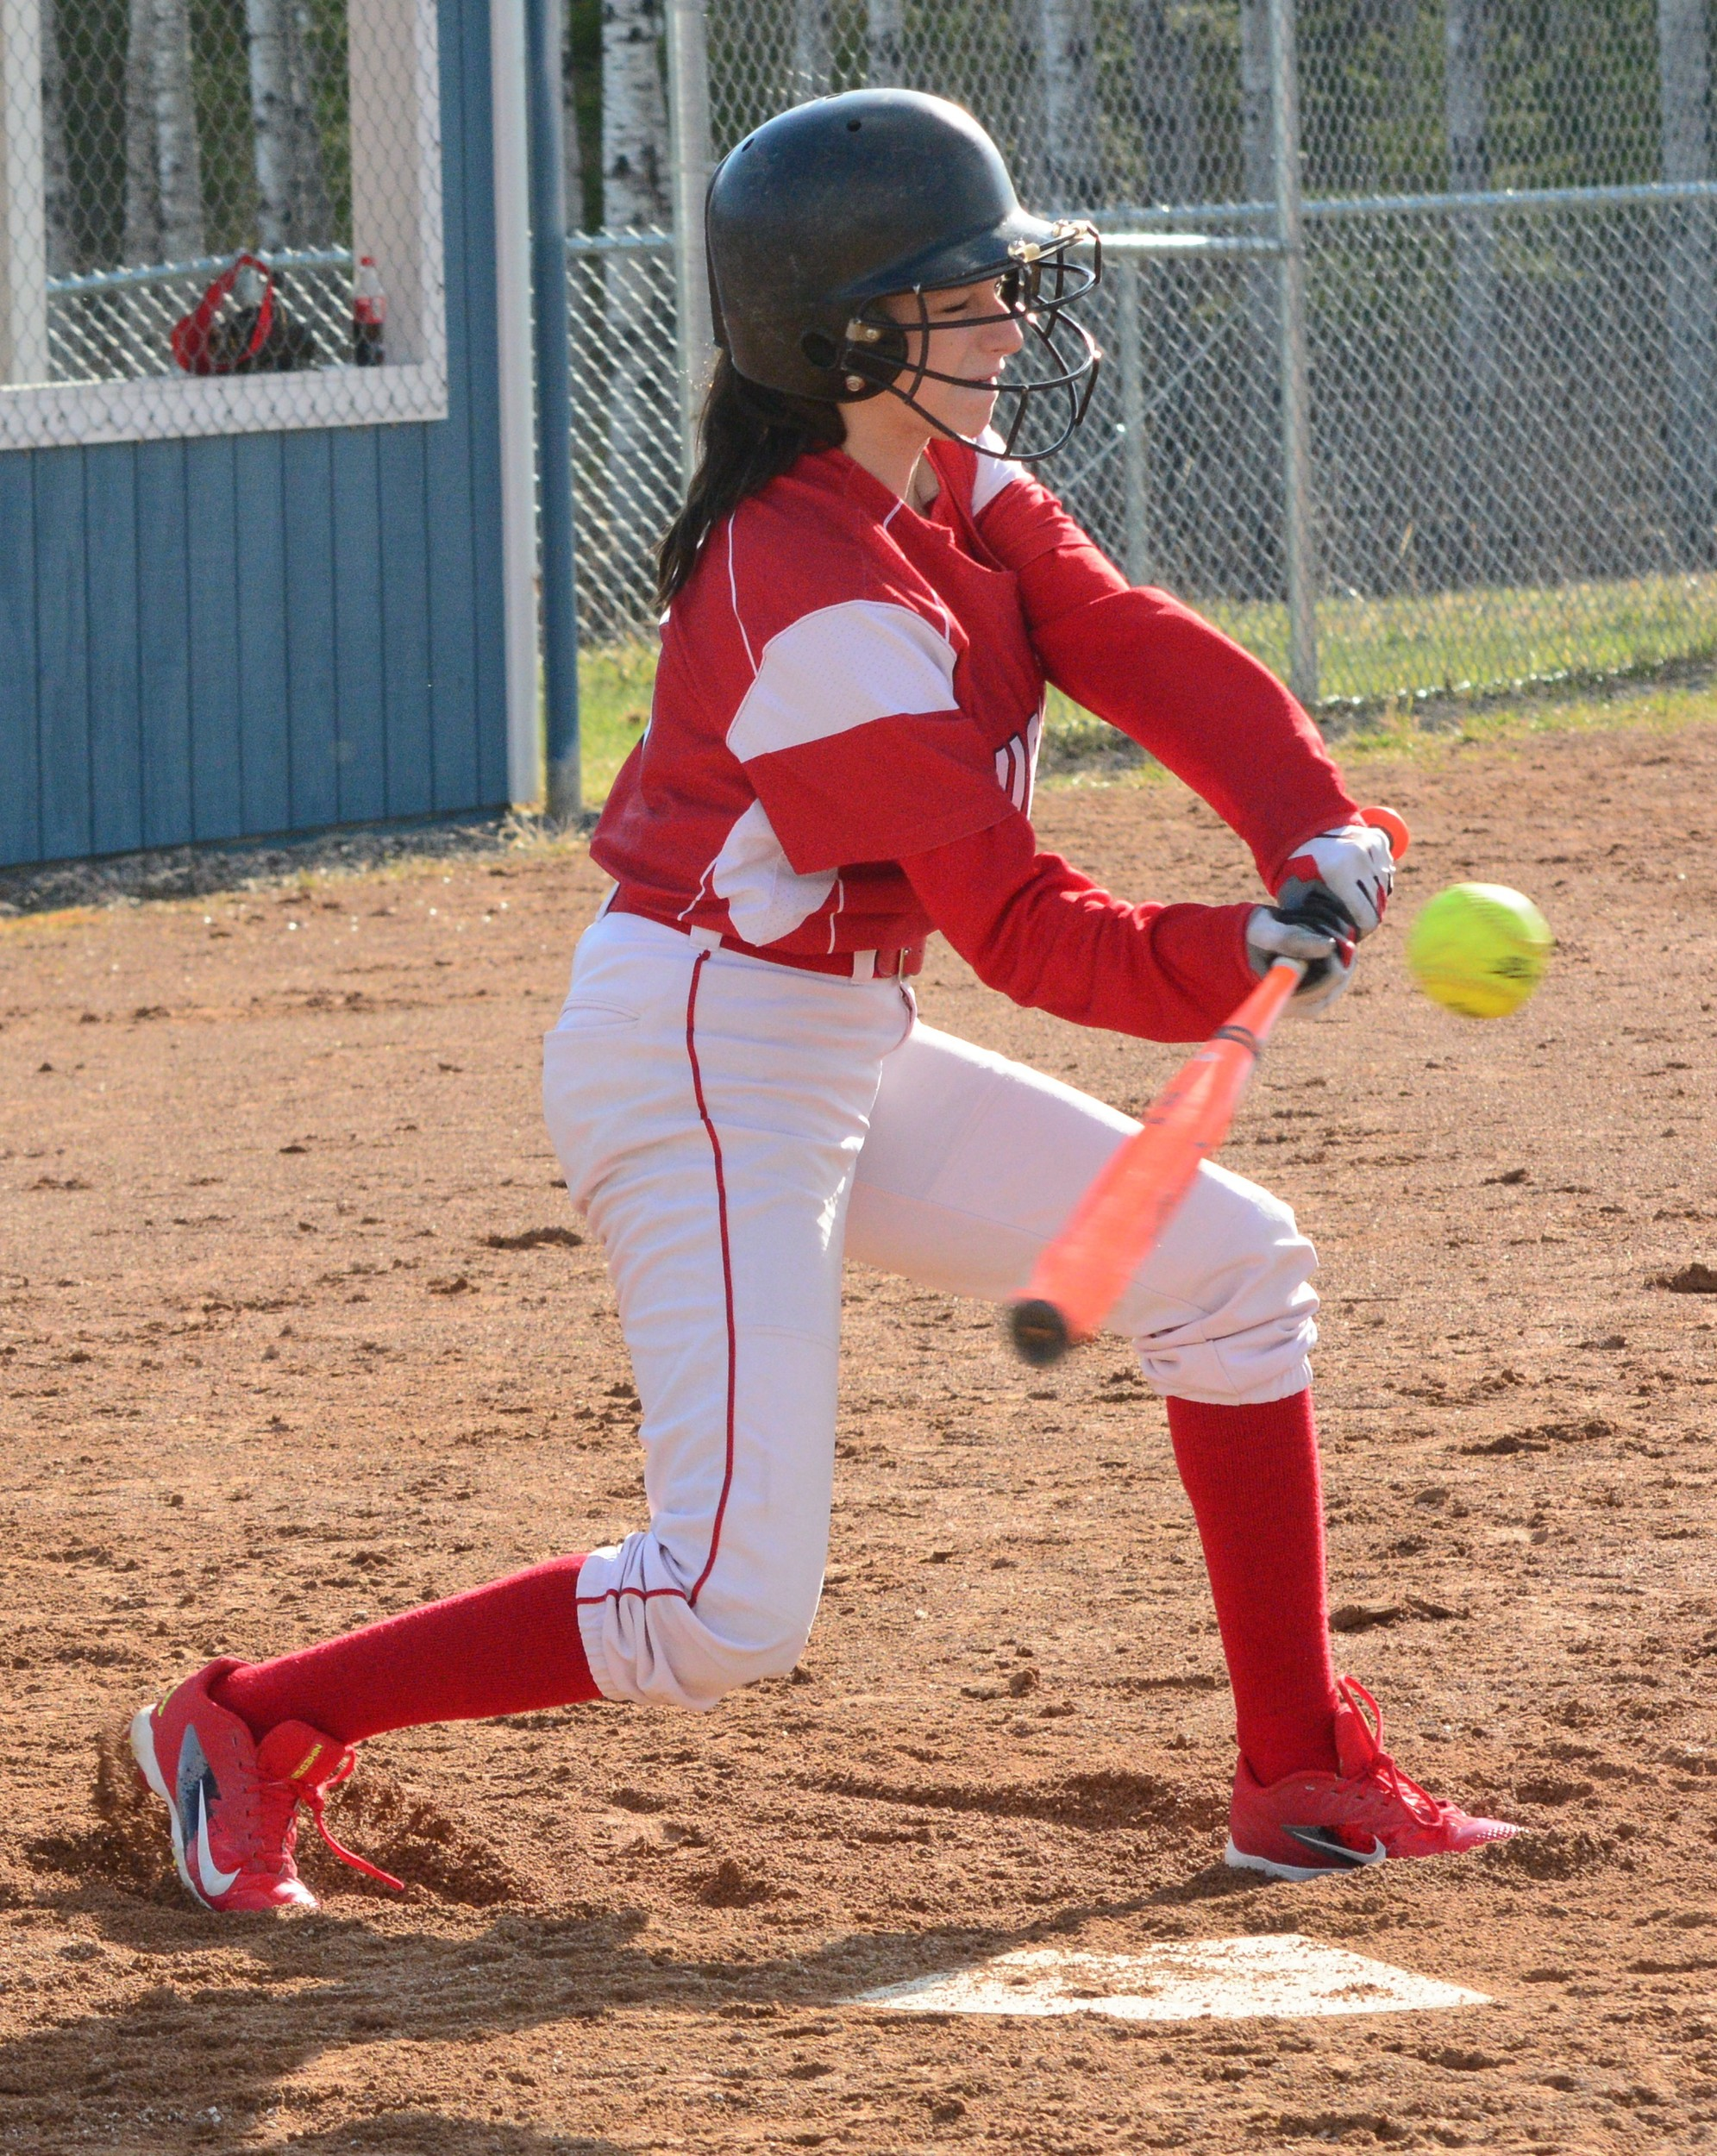 Ely's Savannah Johnson connects with a pitch in Thursday's game.